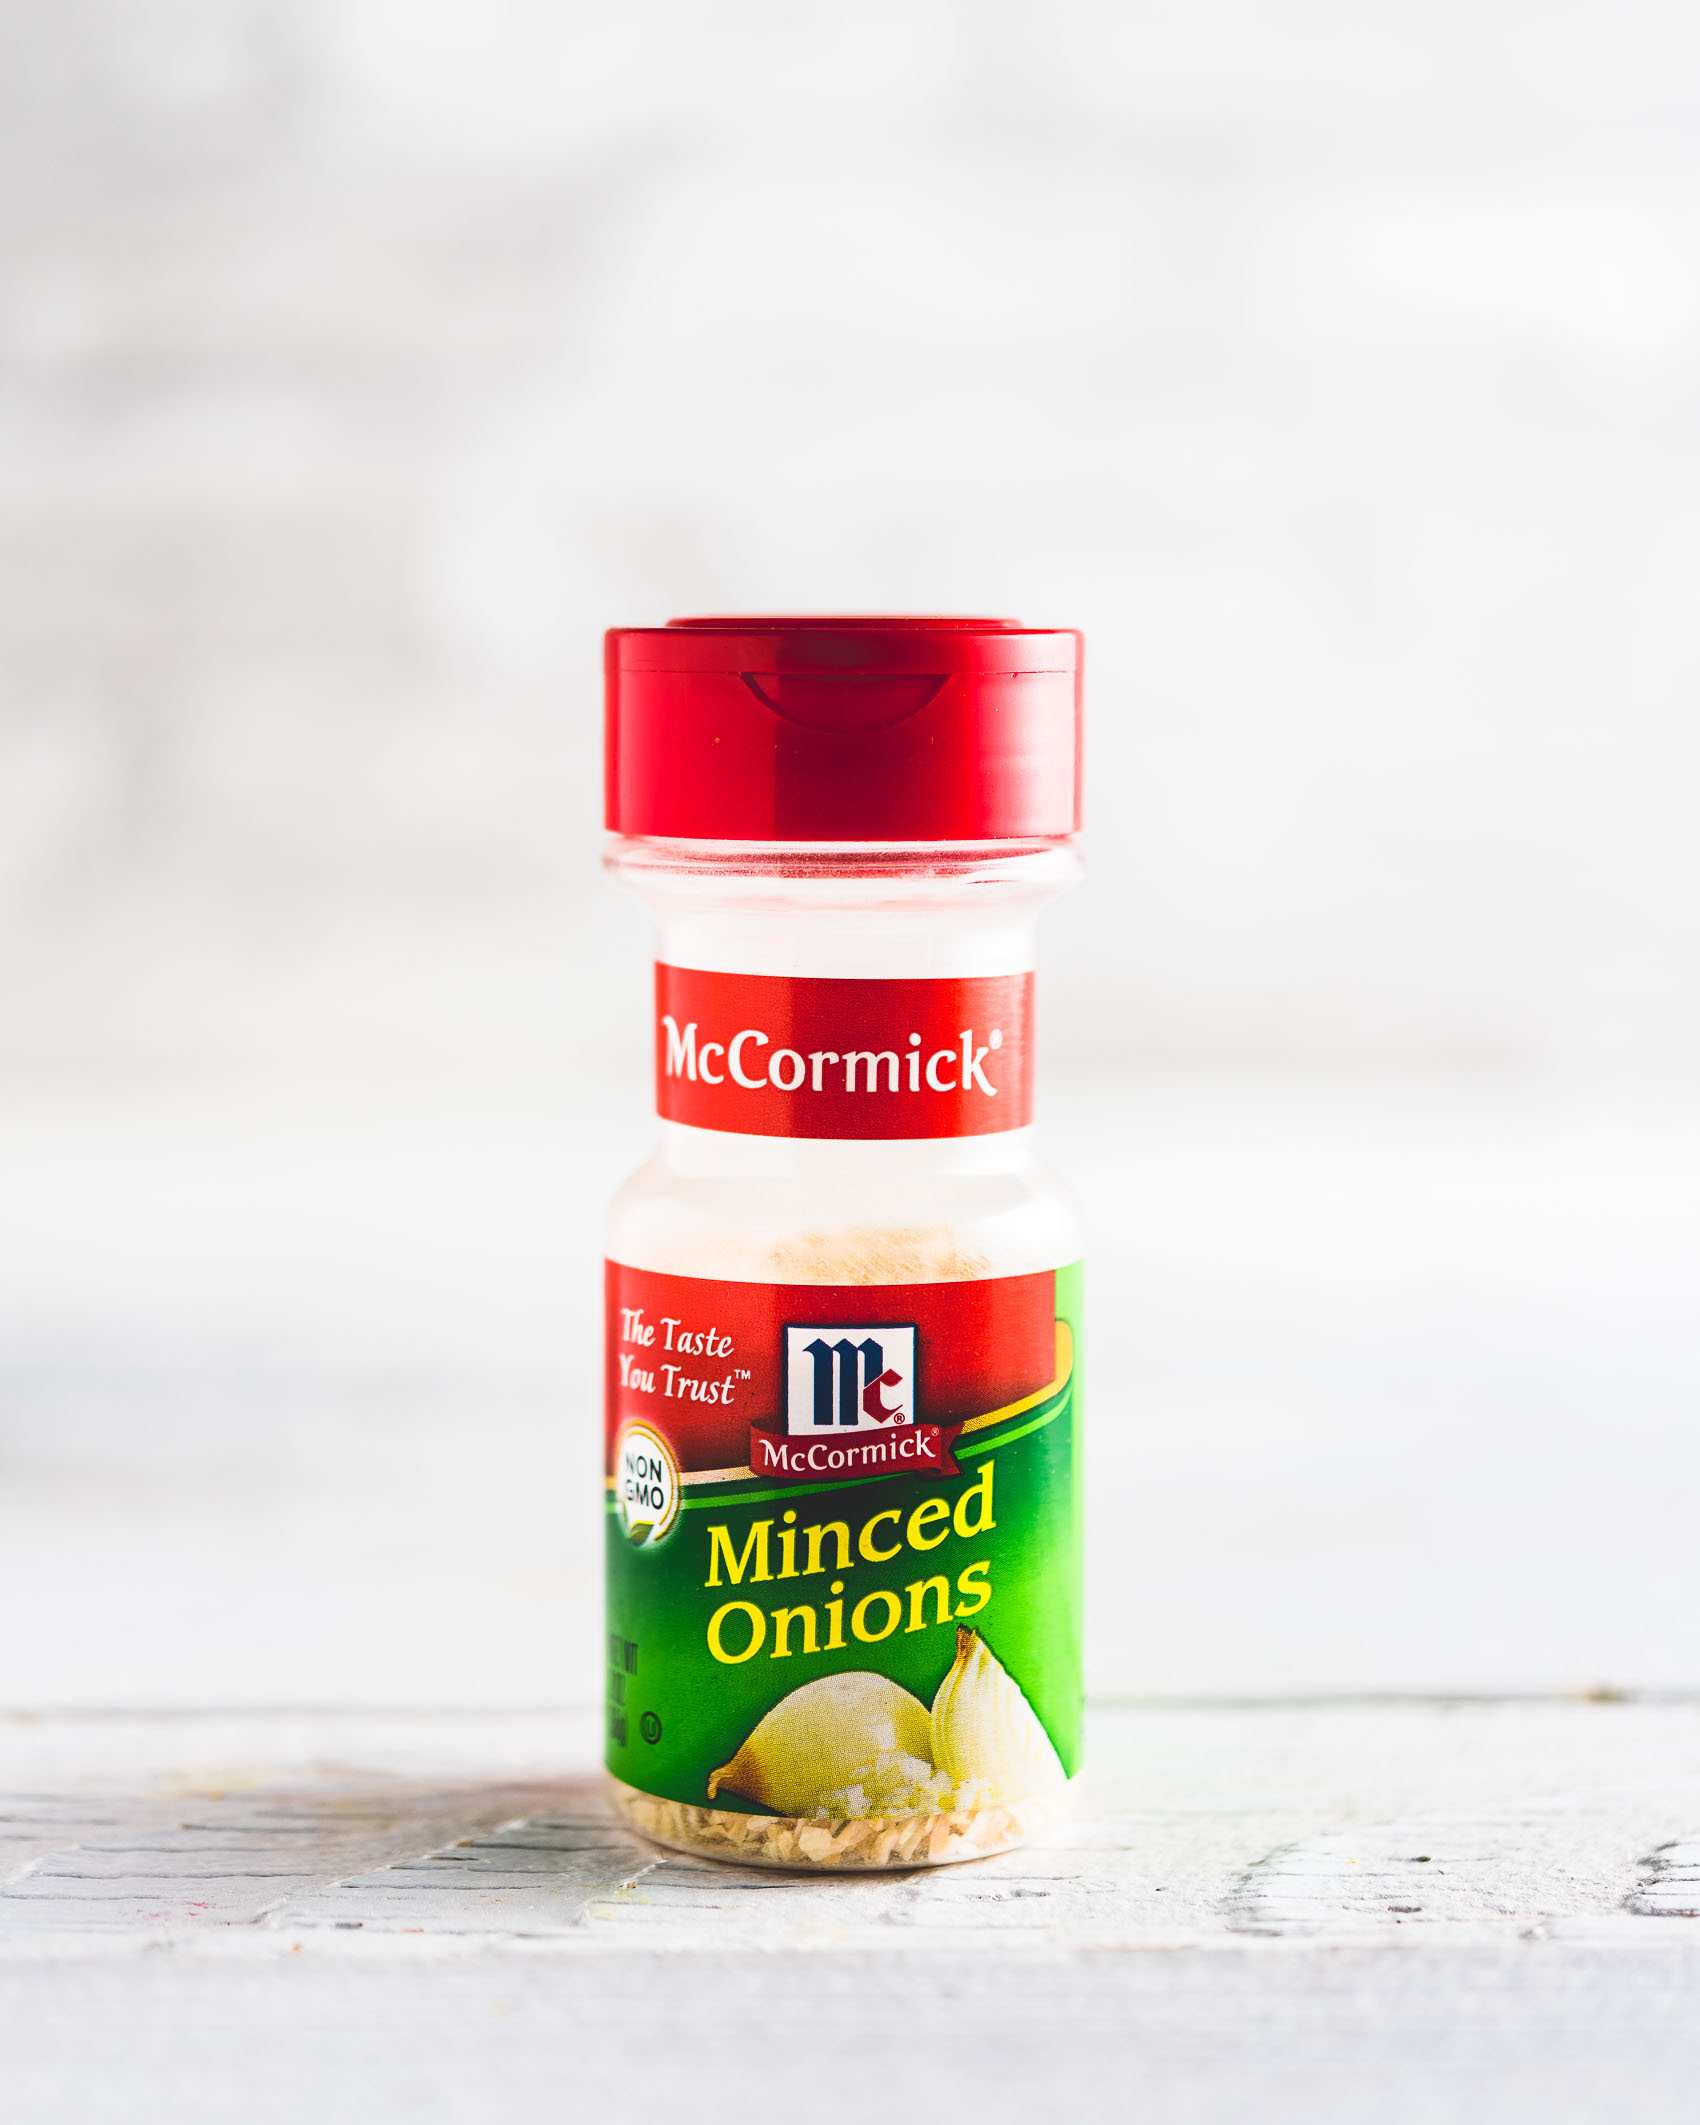 McCormick Dried Minced Onions